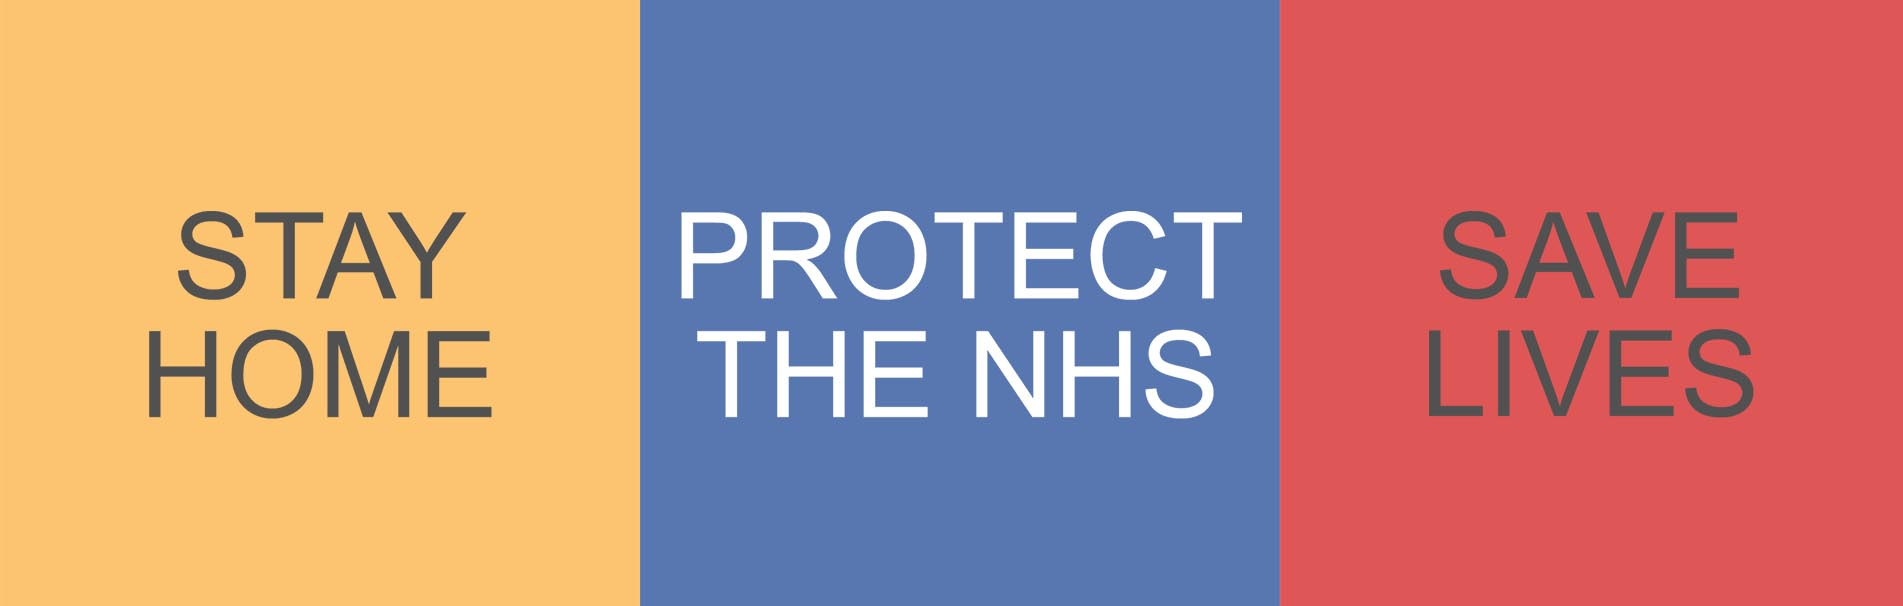 stay-home-protect-the-nhs-save-lives-sli